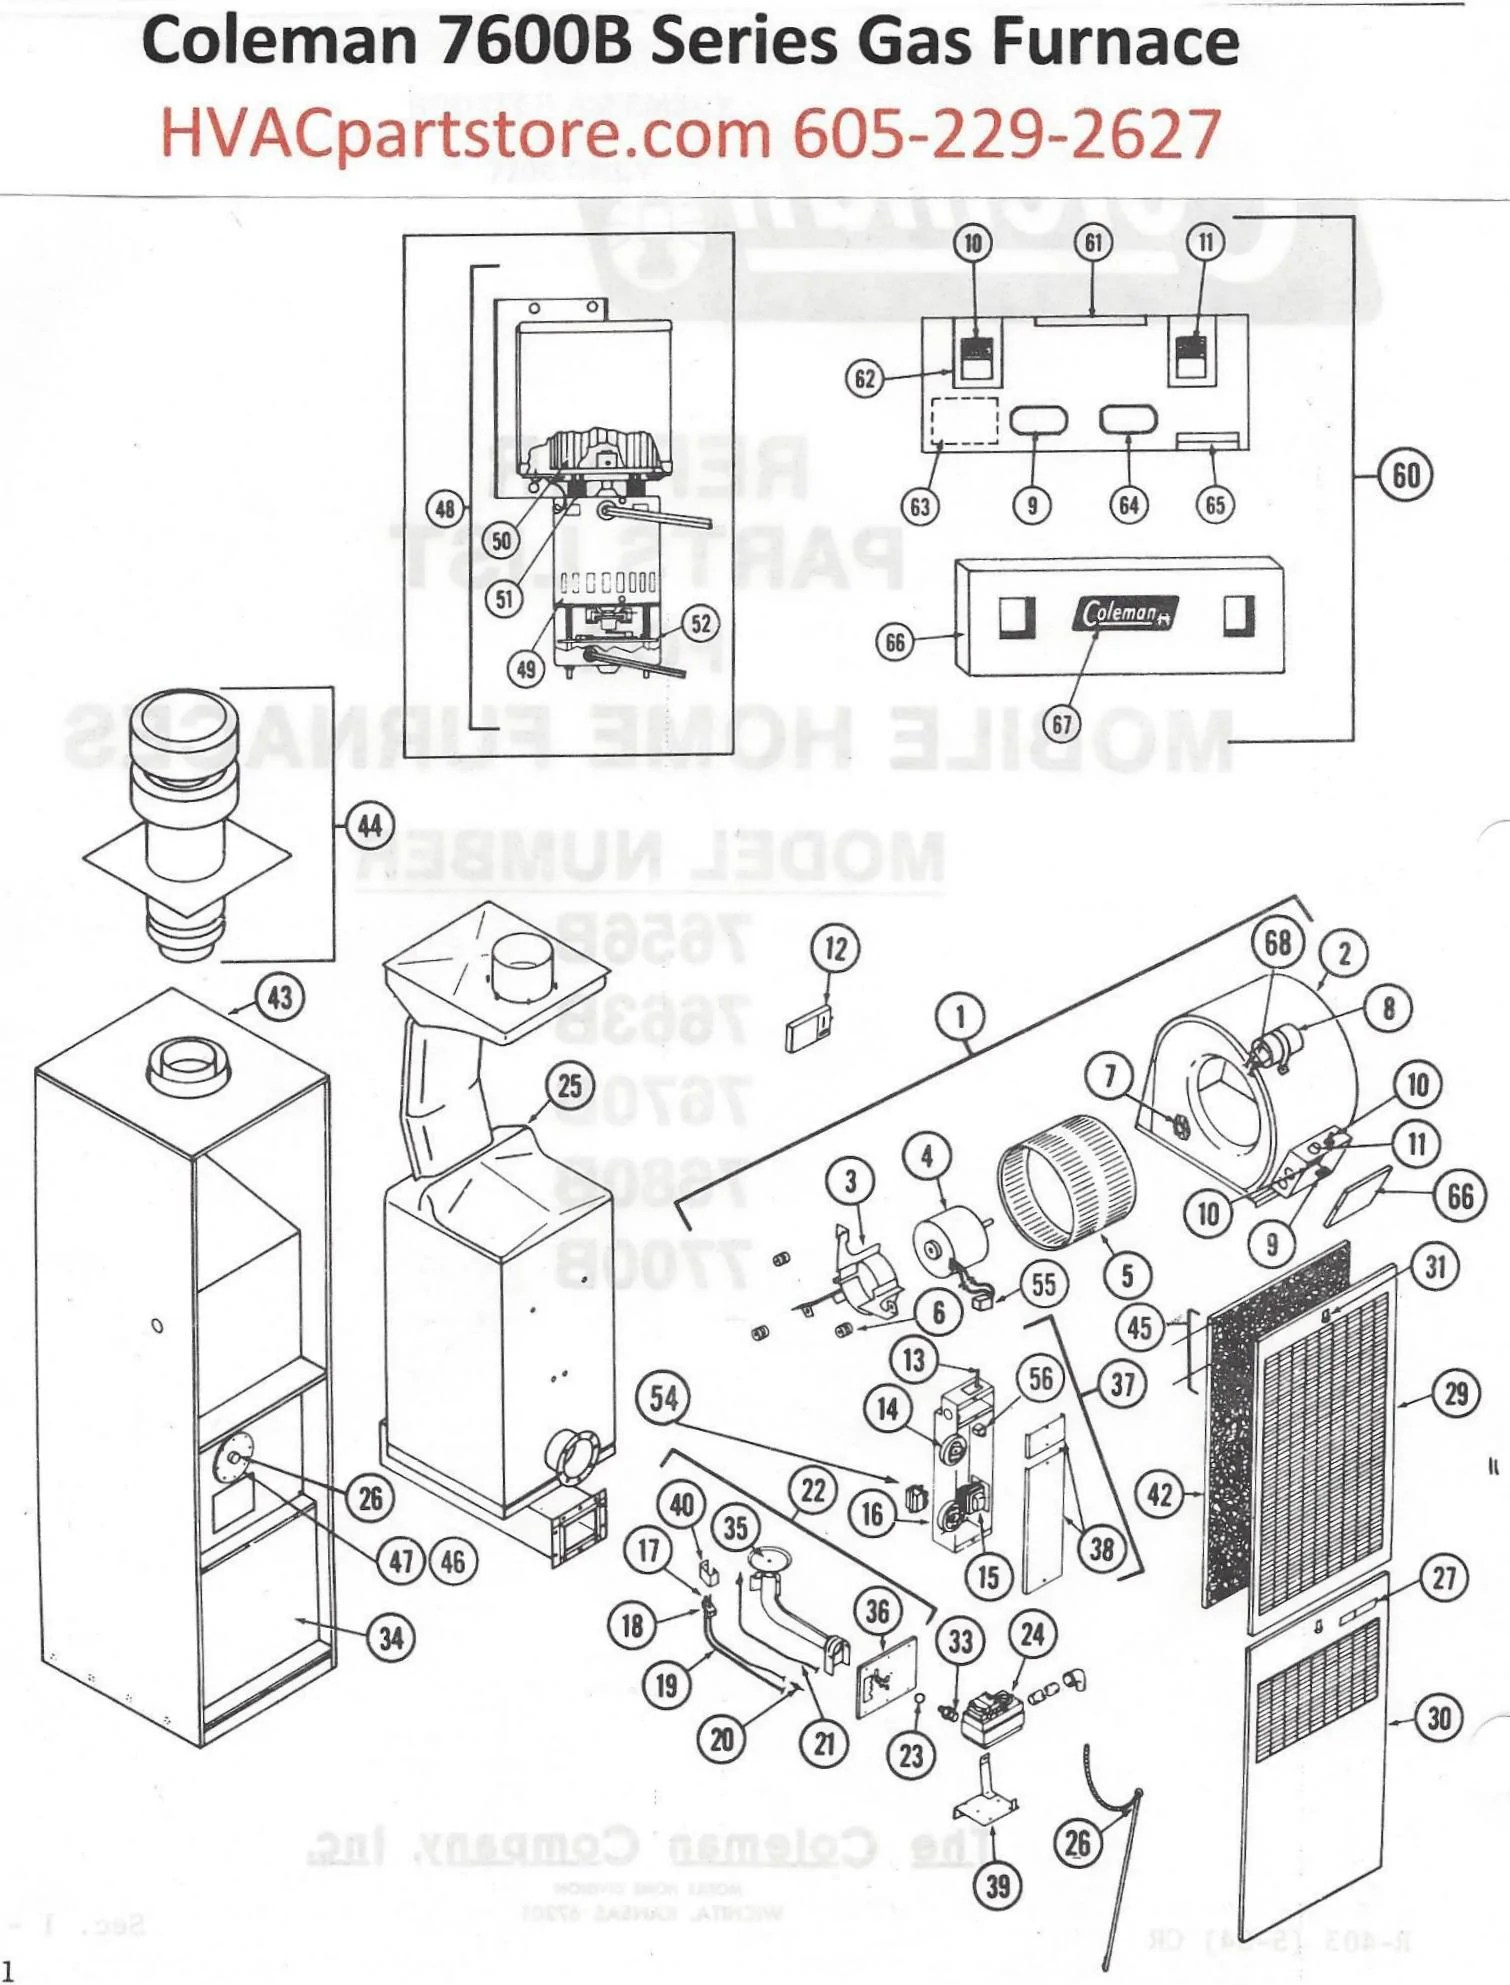 small resolution of 7680b856 coleman gas furnace parts u2013 hvacpartstore trailer wiring diagram coleman gas furnace 7680b856 coleman